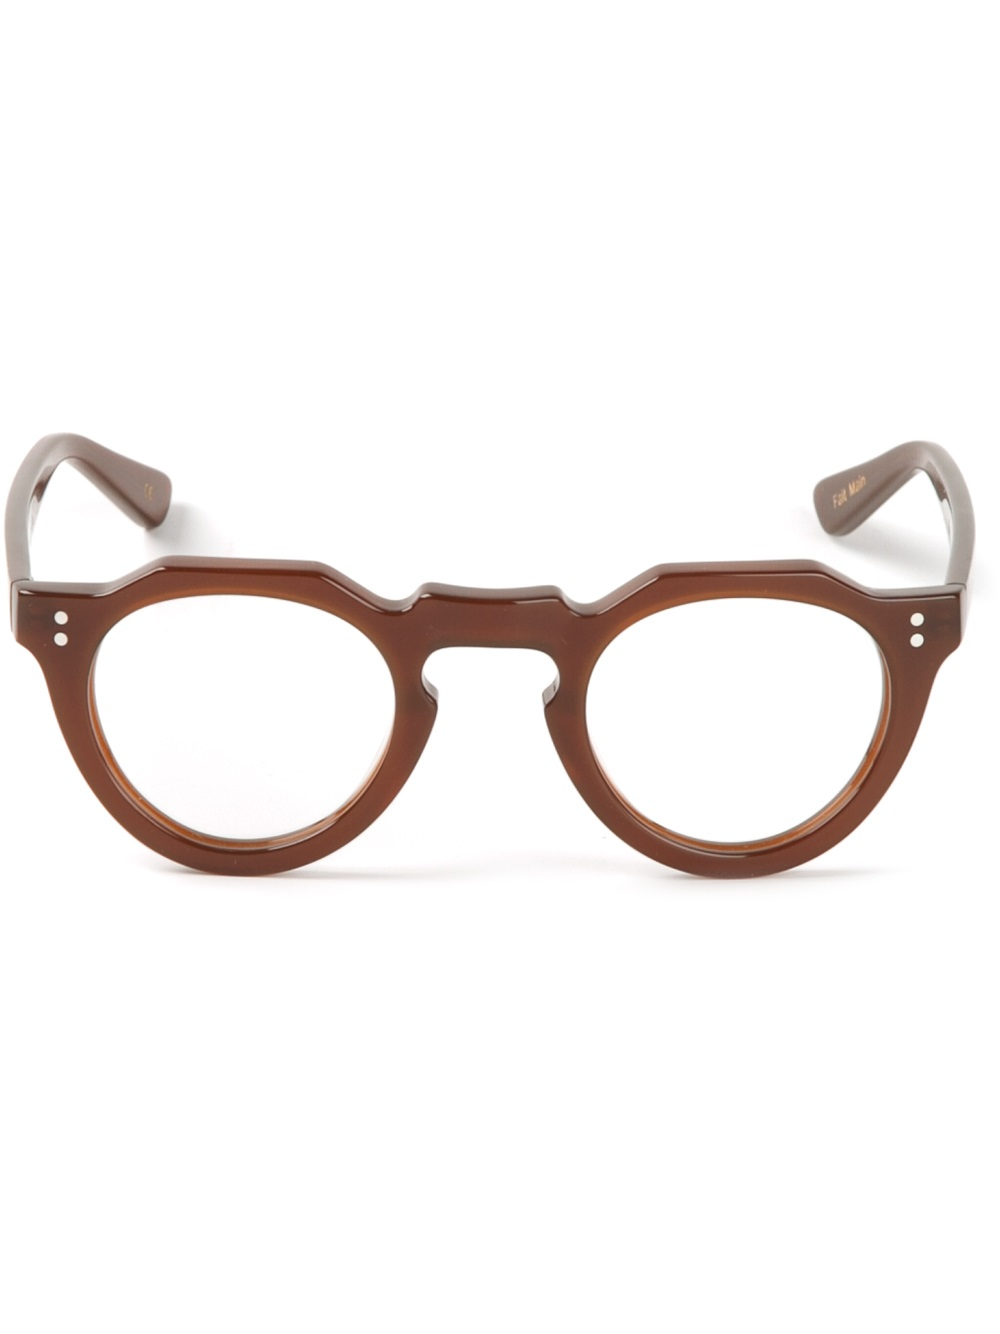 6e7c2d1e6d Lyst - Lesca Round Glasses in Brown for Men